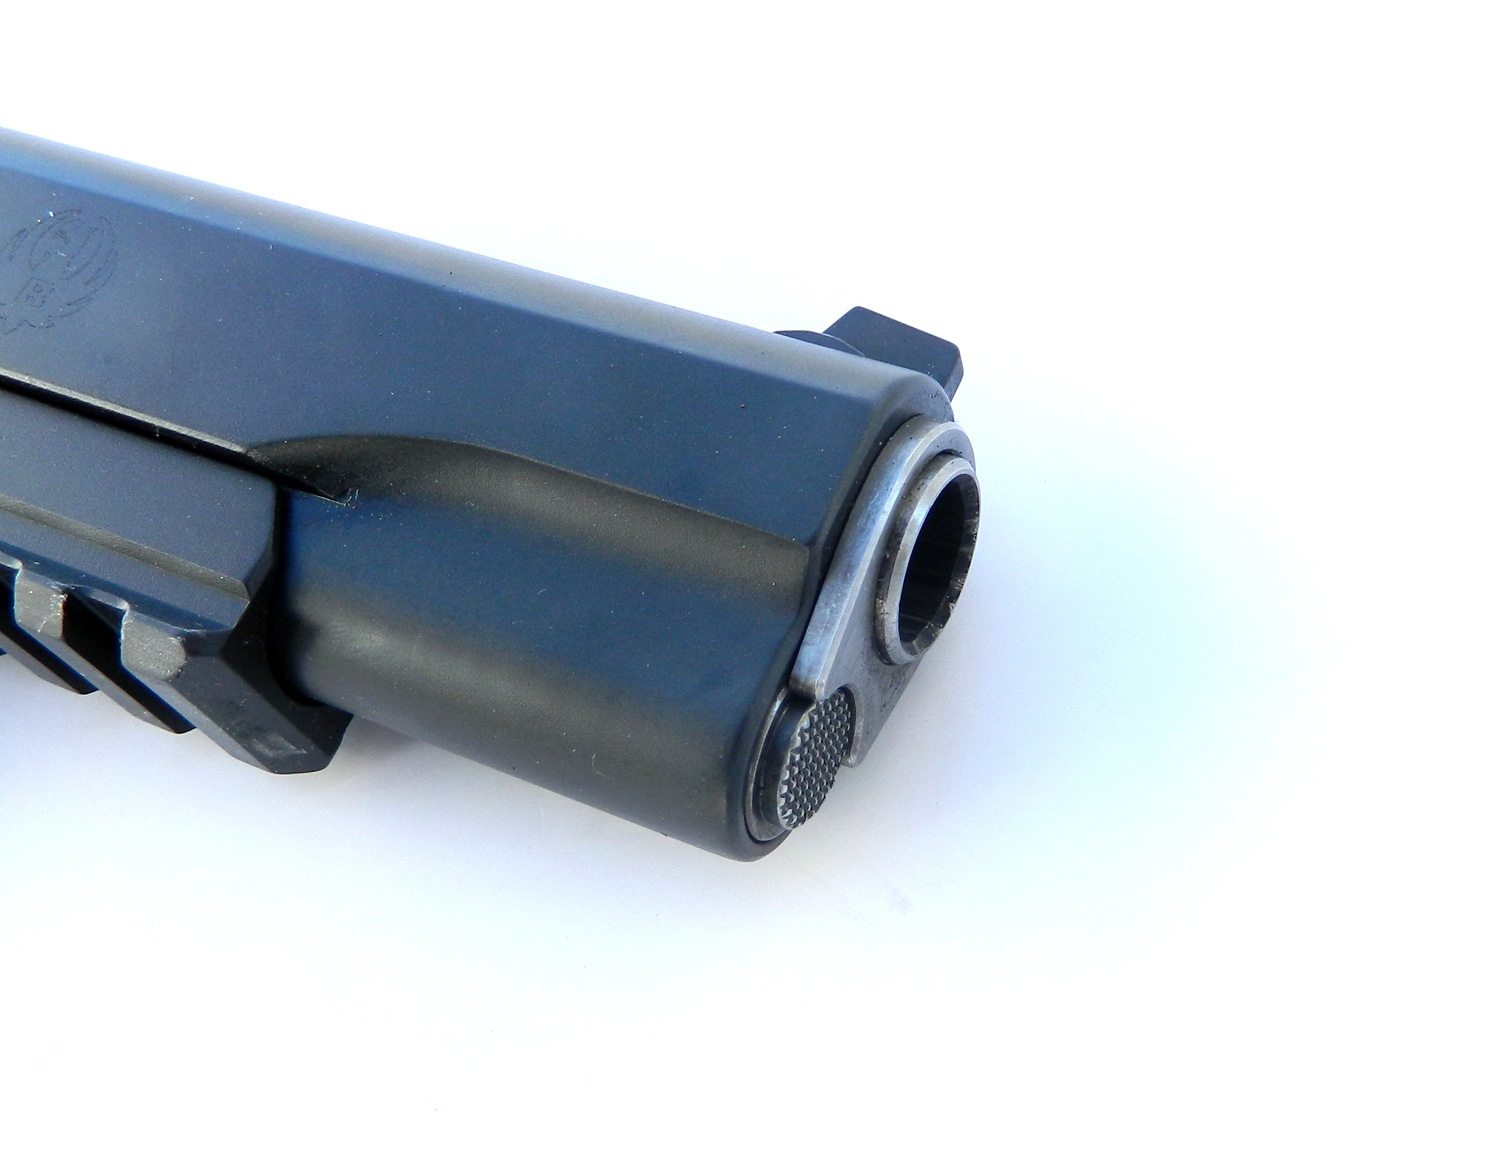 1911 pistol barrel bushing